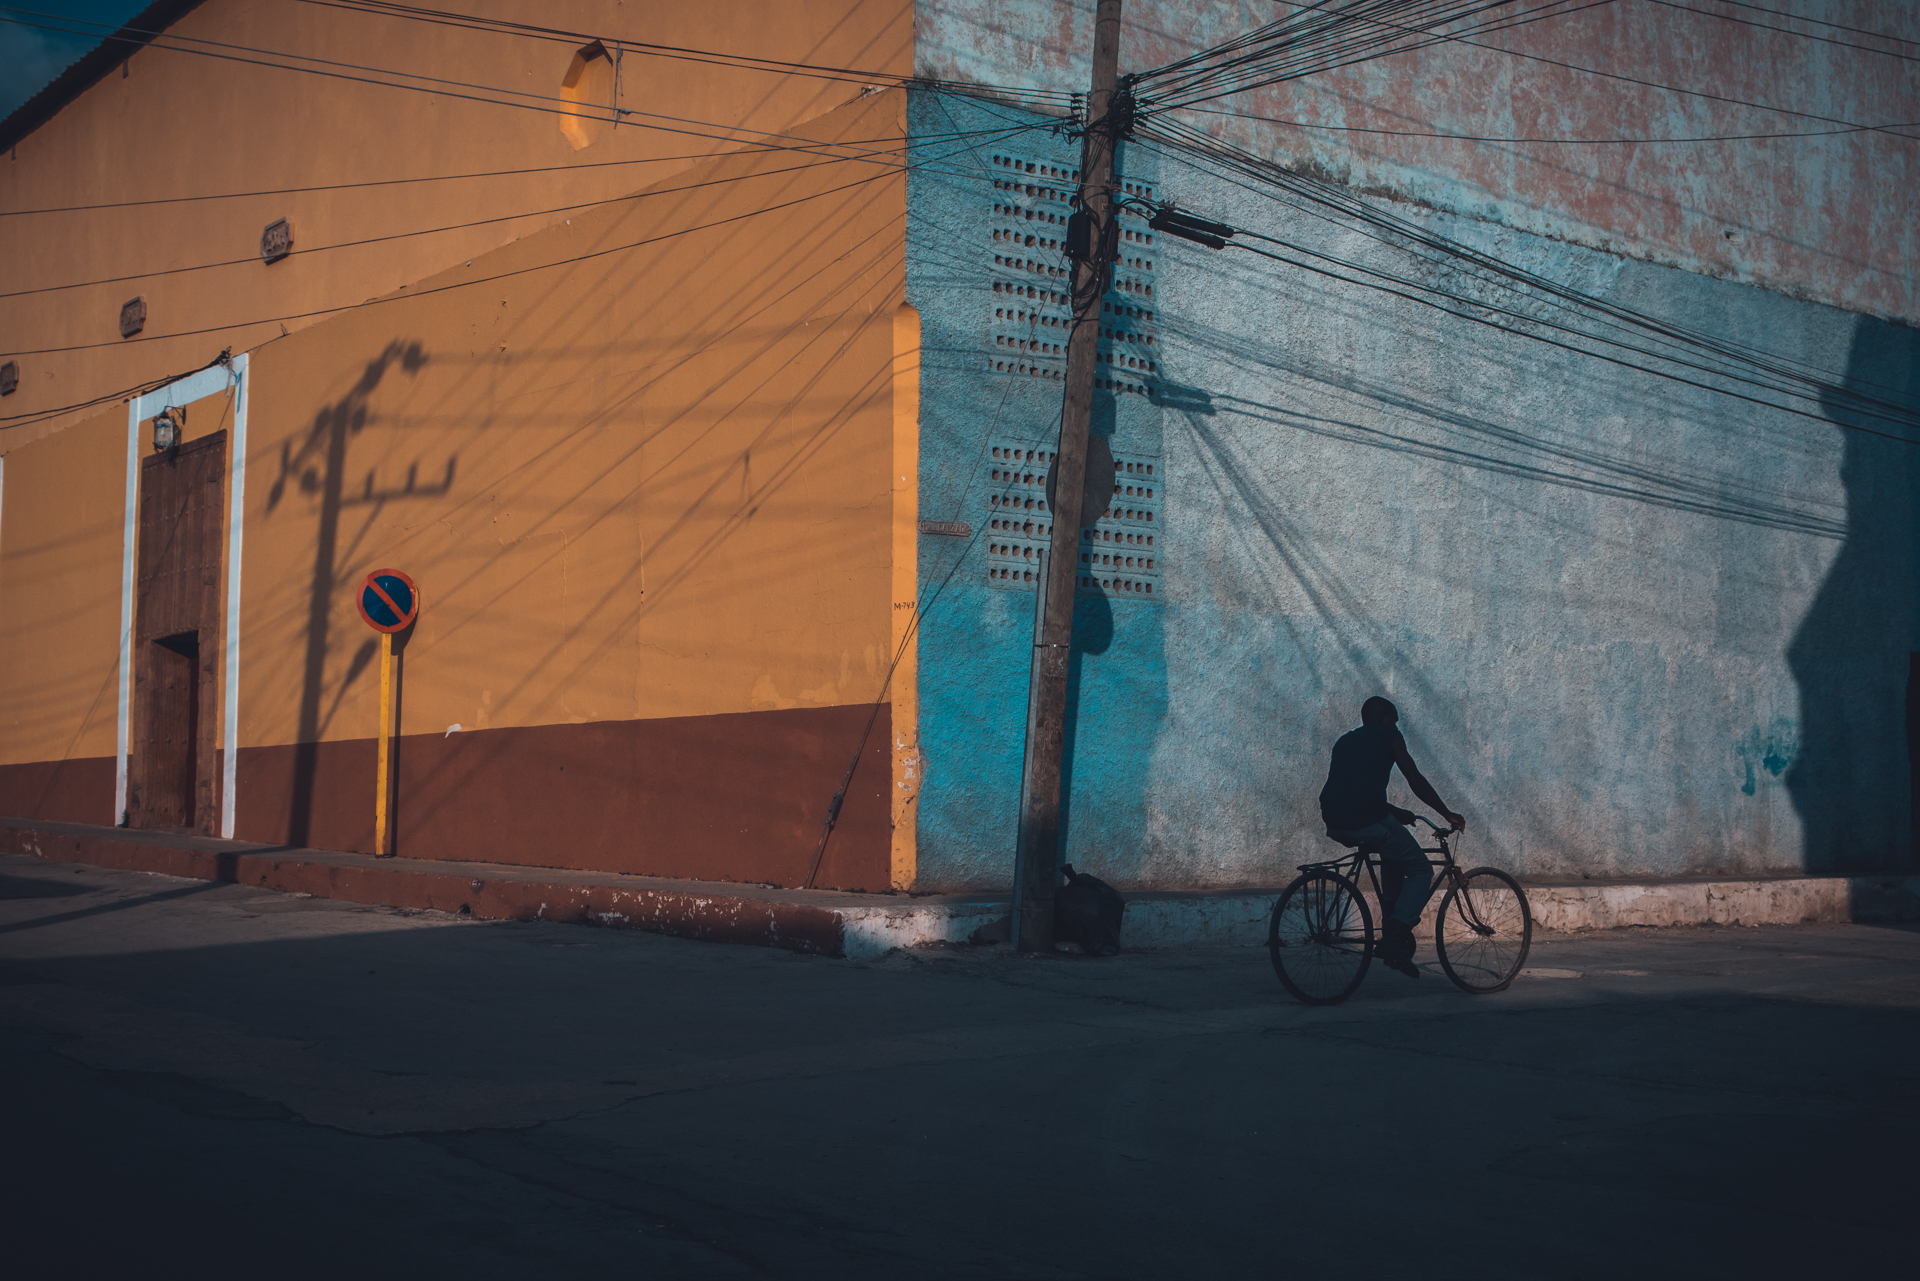 Cinematic Cuba Series by Stijn Hoekstra